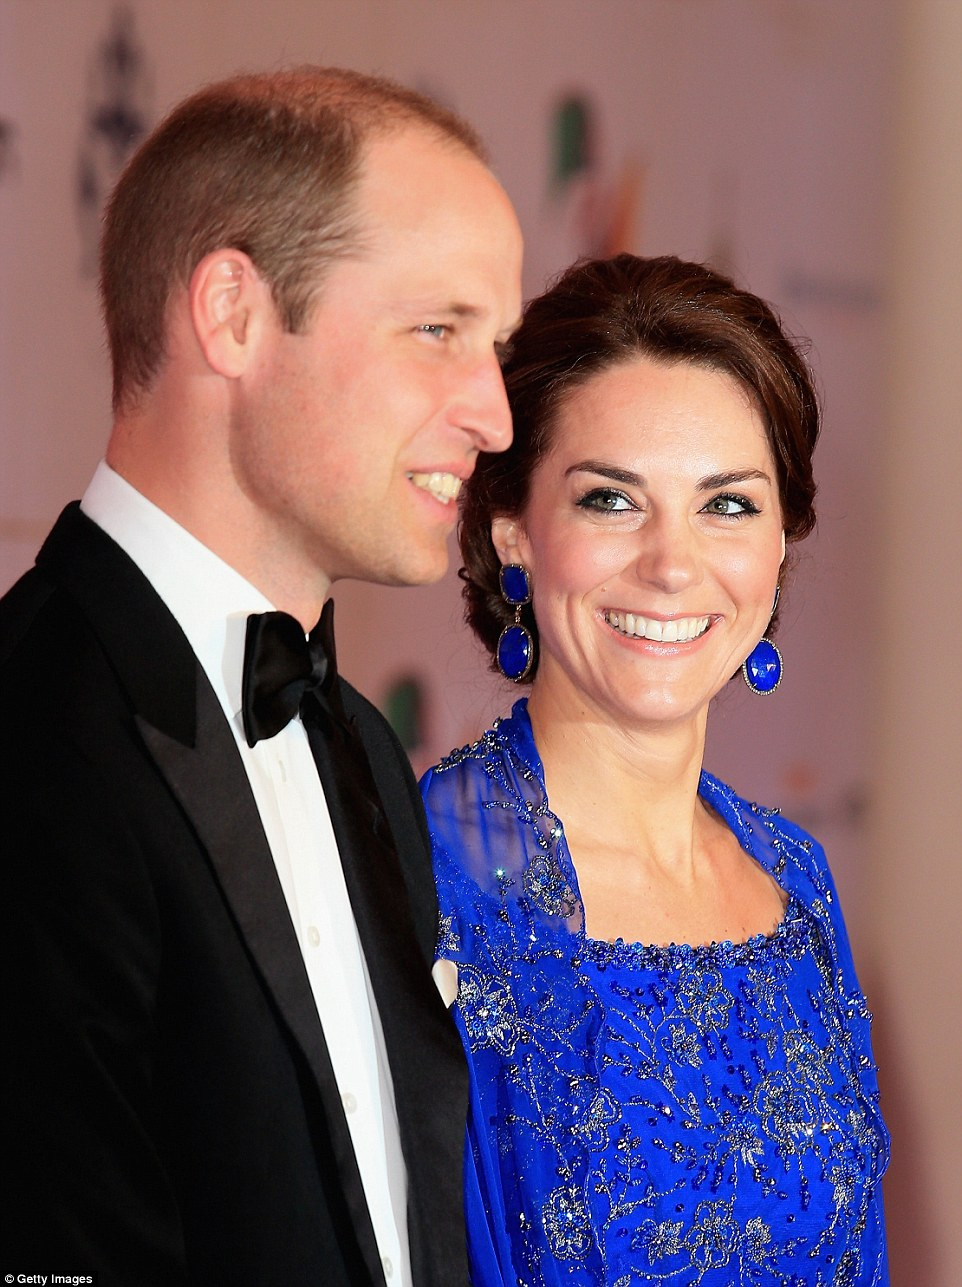 The Duke & Duchess of Cambridge attended a celebrity filled gala on Royal Tour